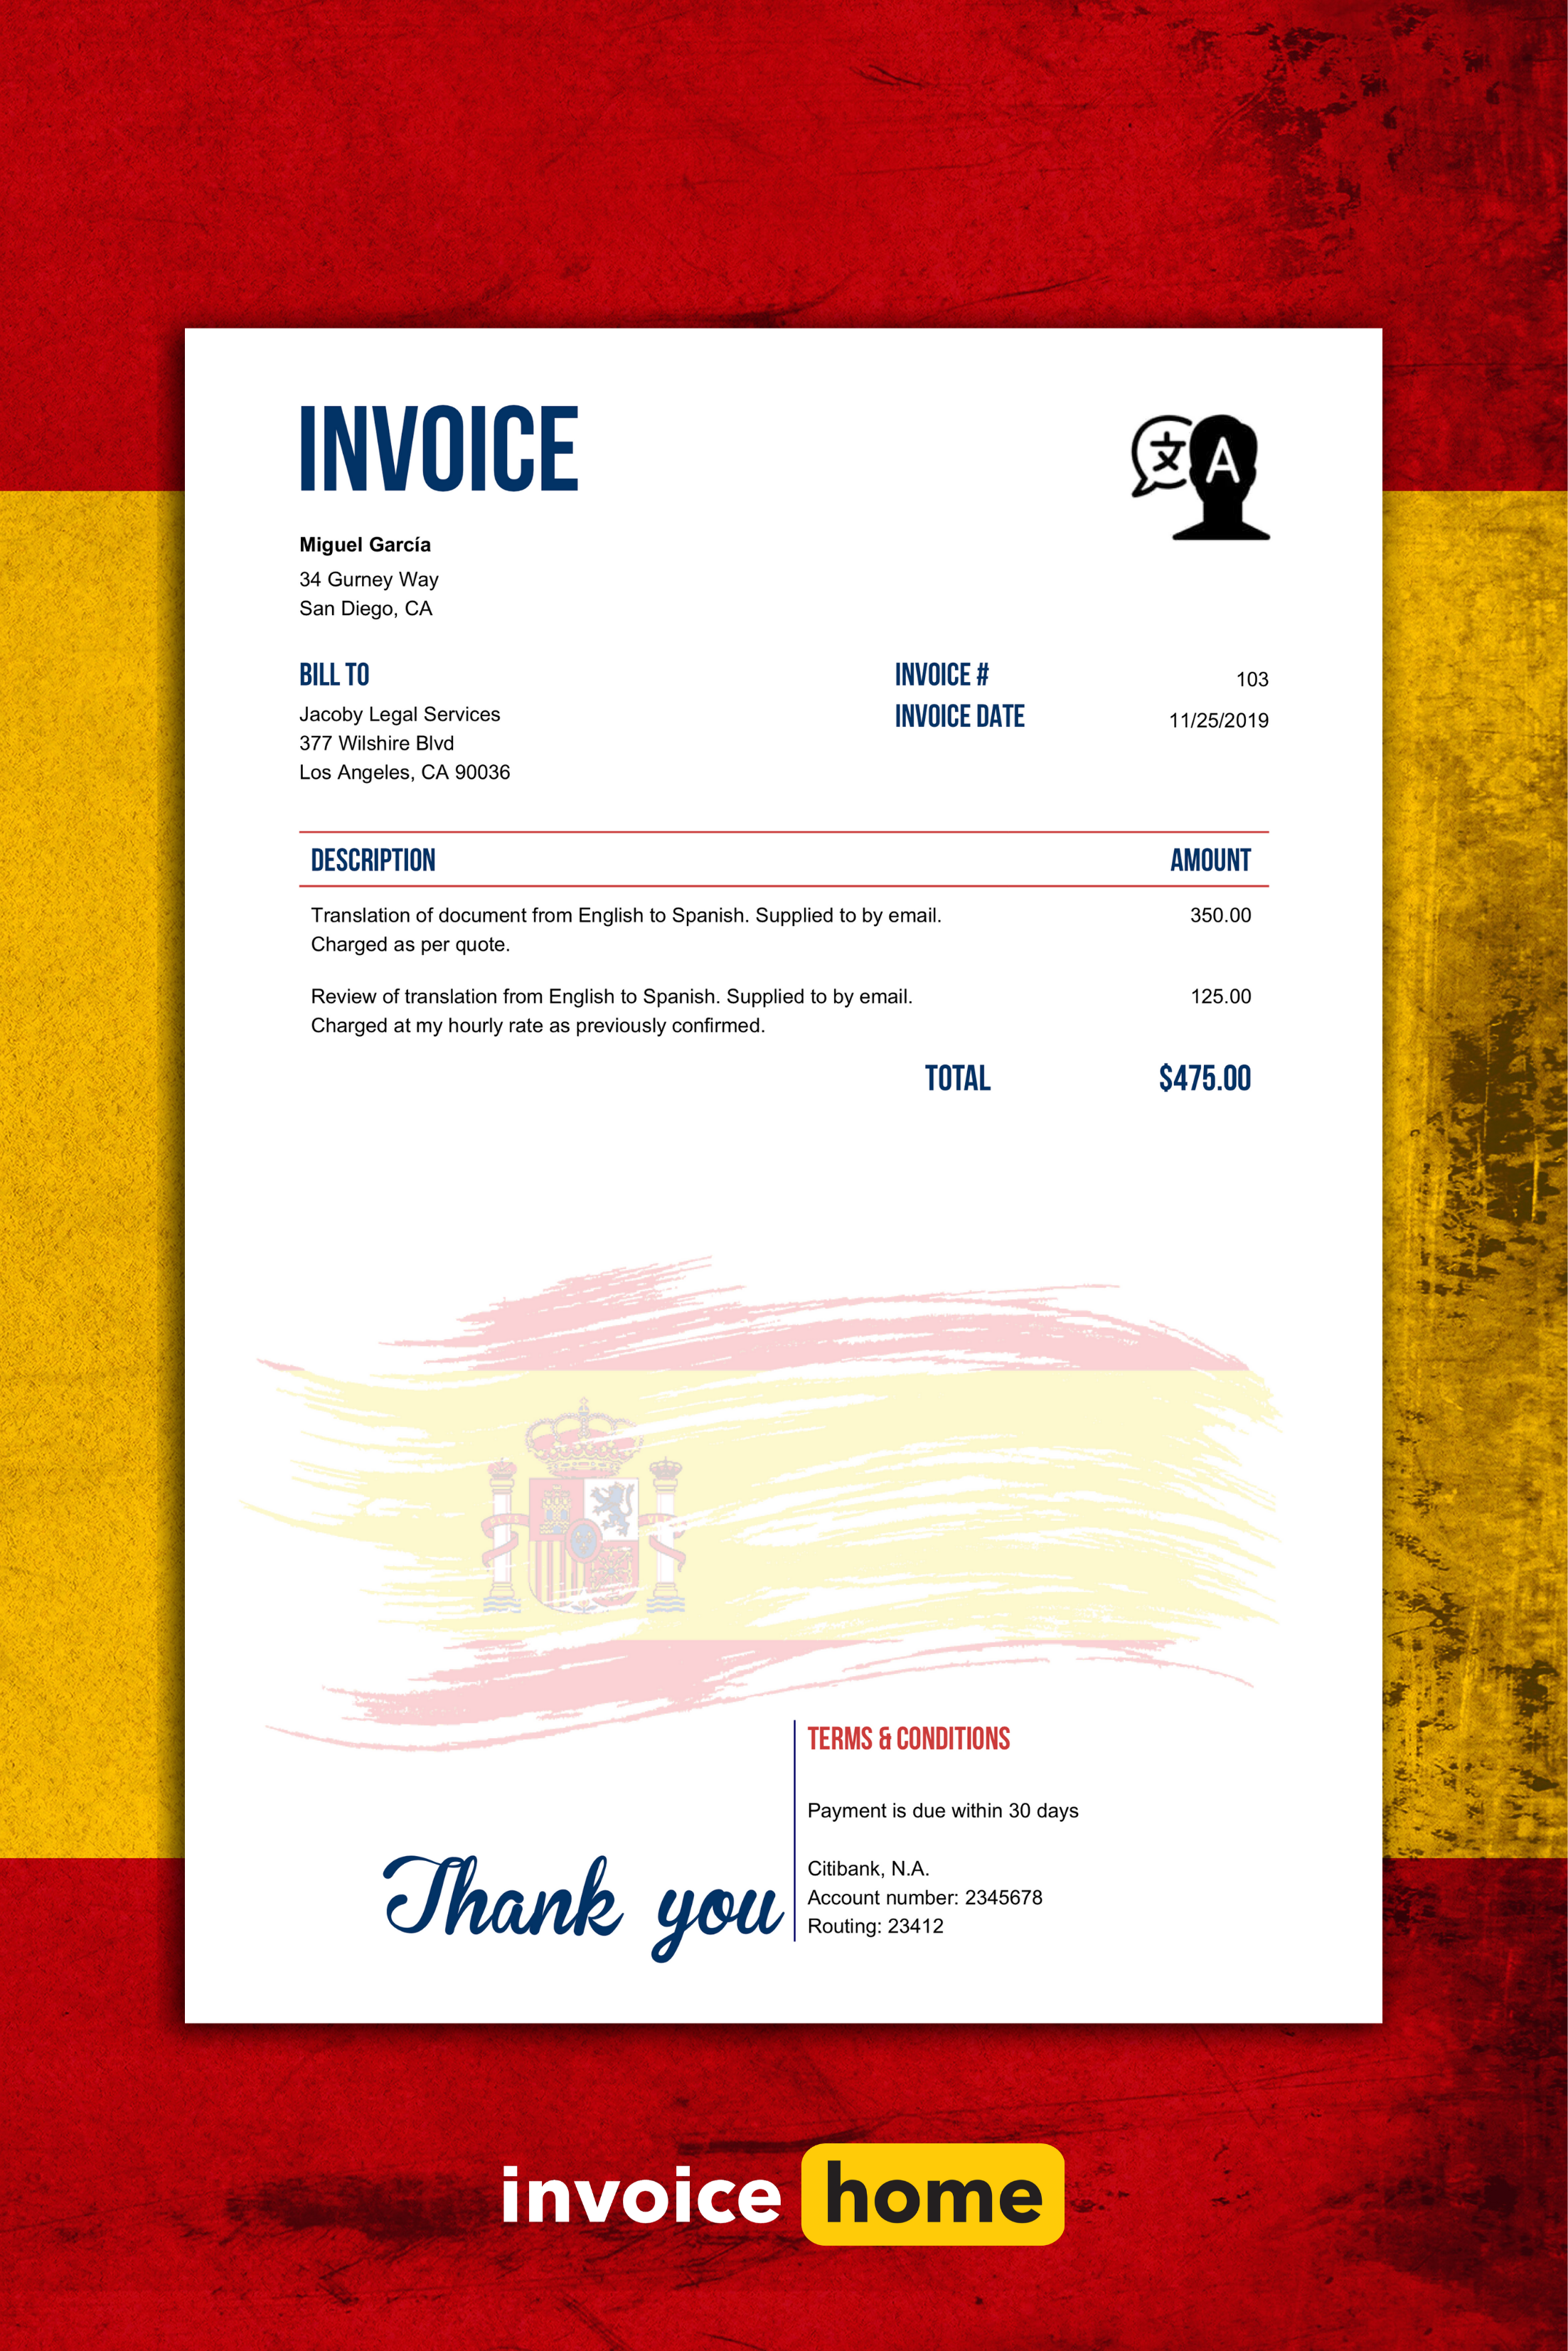 ¡Magnífico! Add Spanish flair to your invoices with our